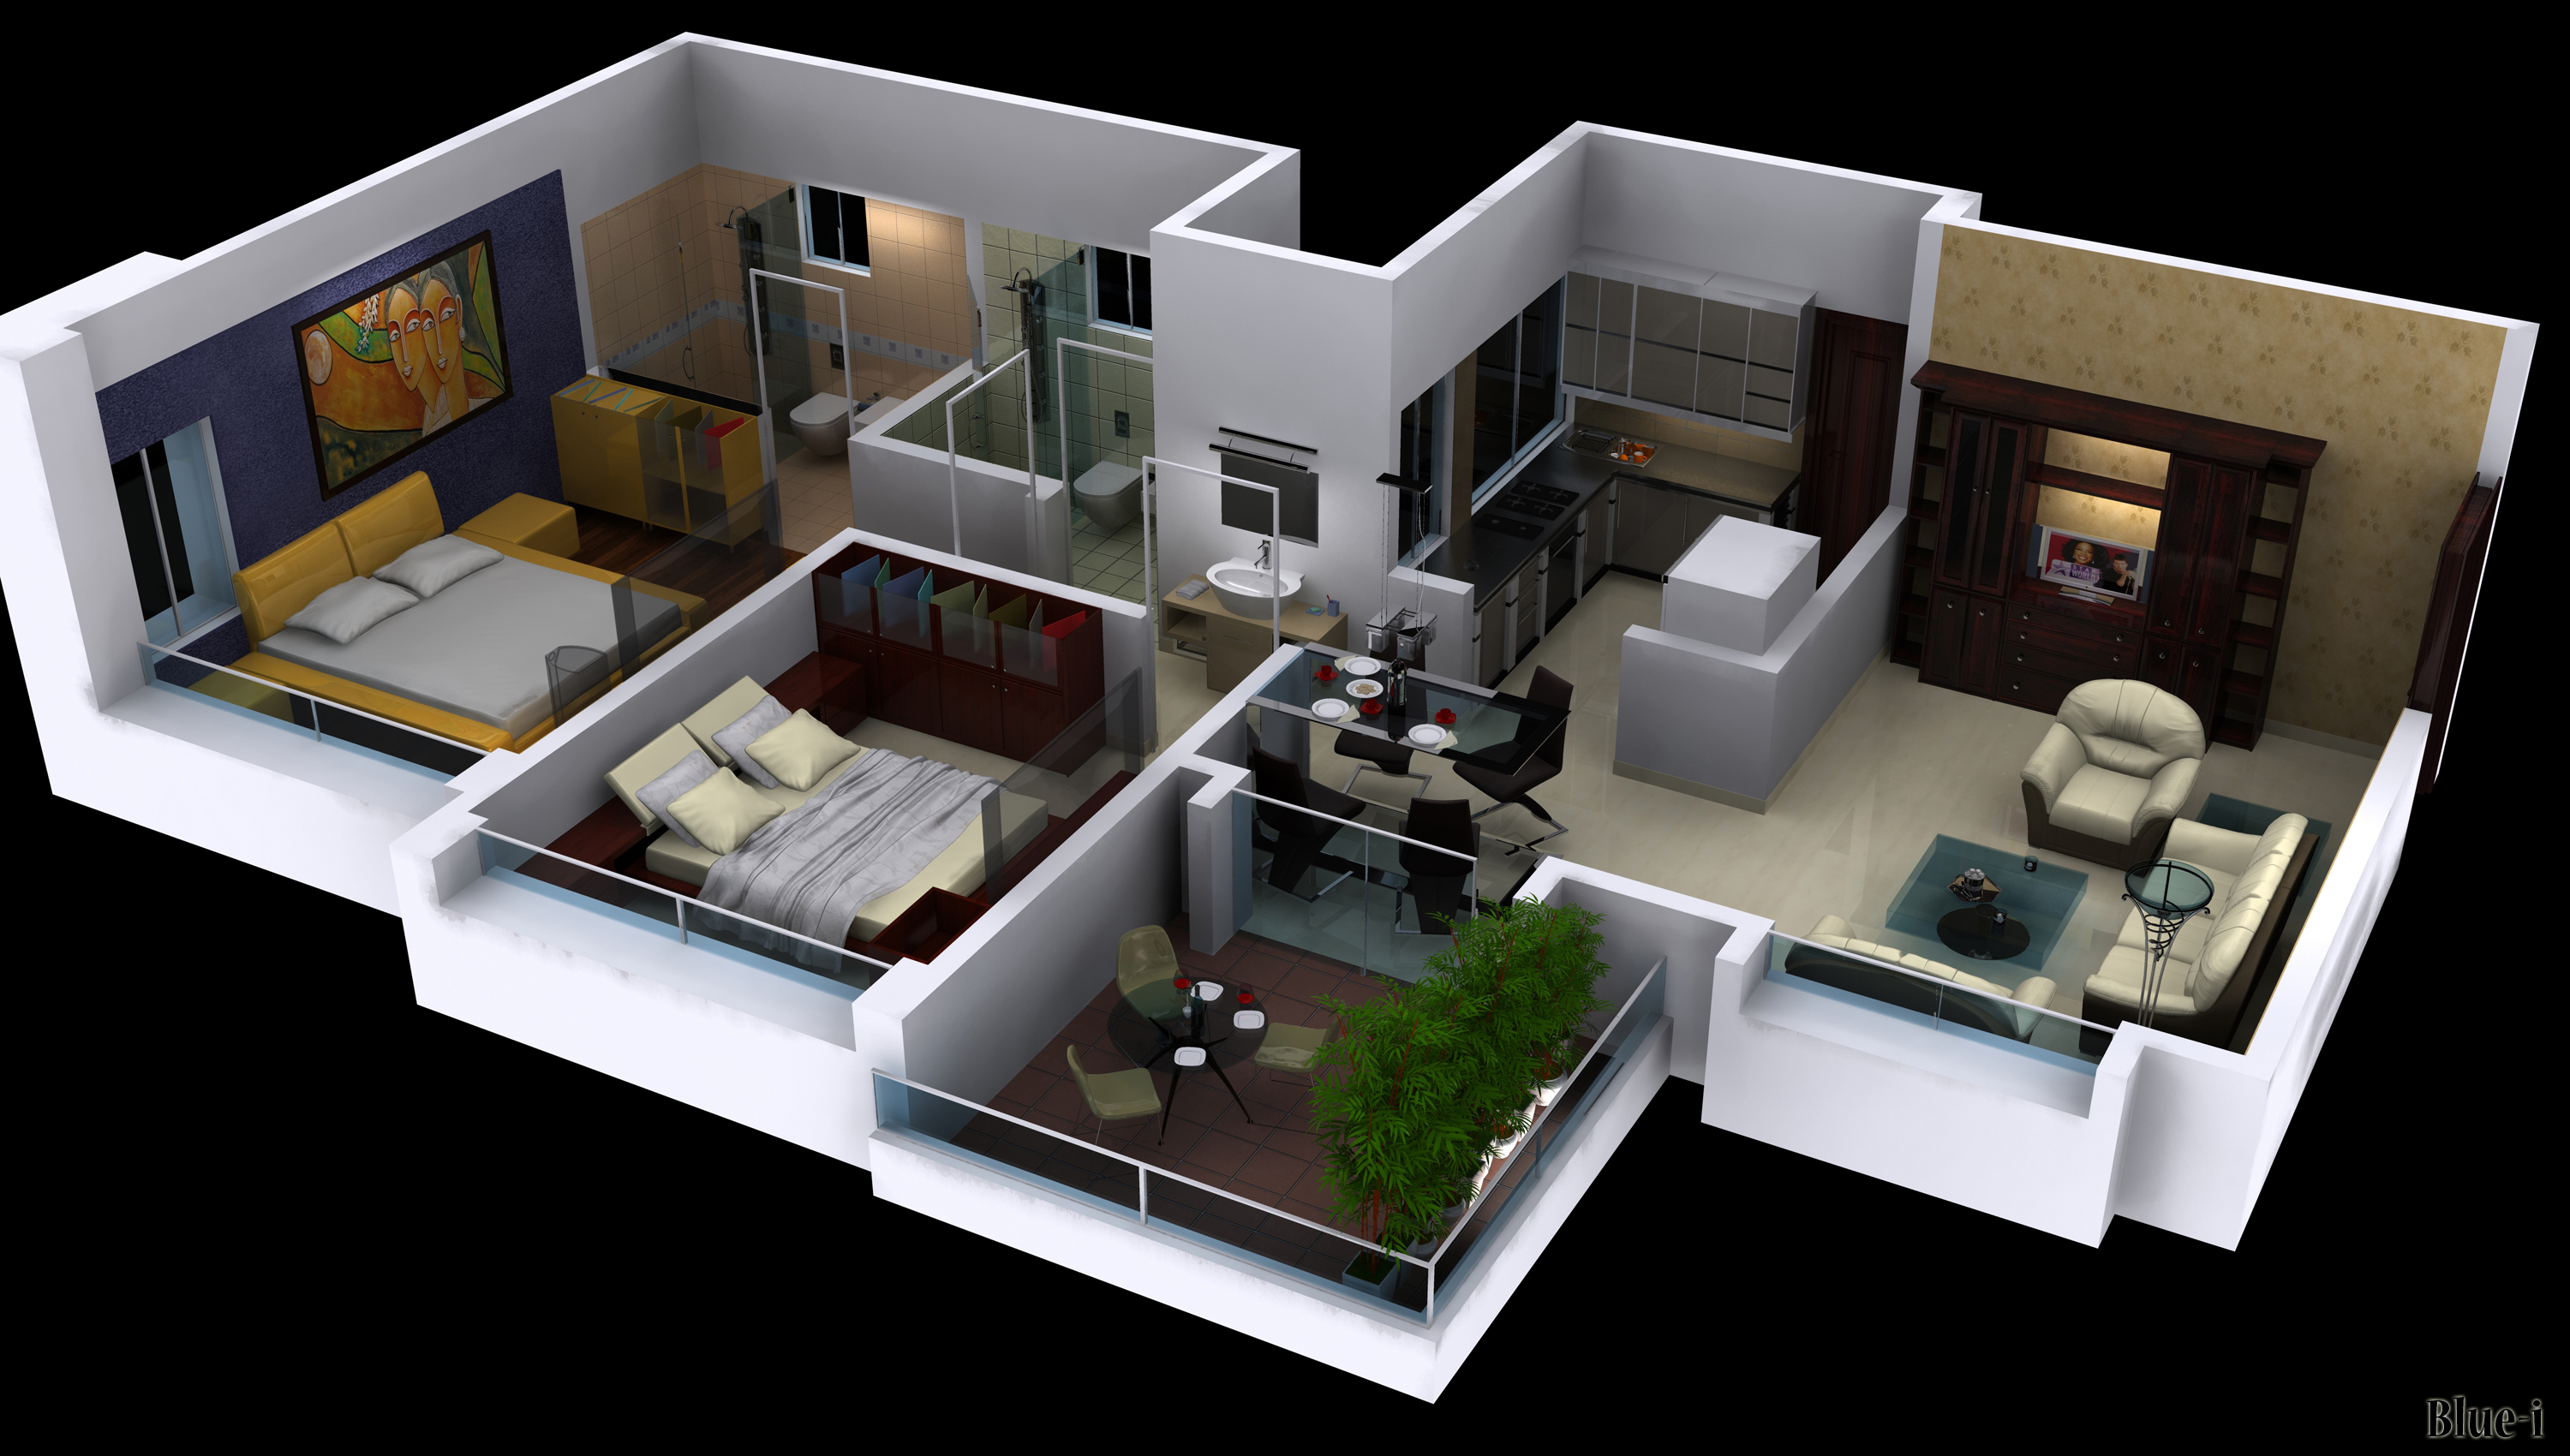 Cut View 2bhk By Psd0503 On Deviantart